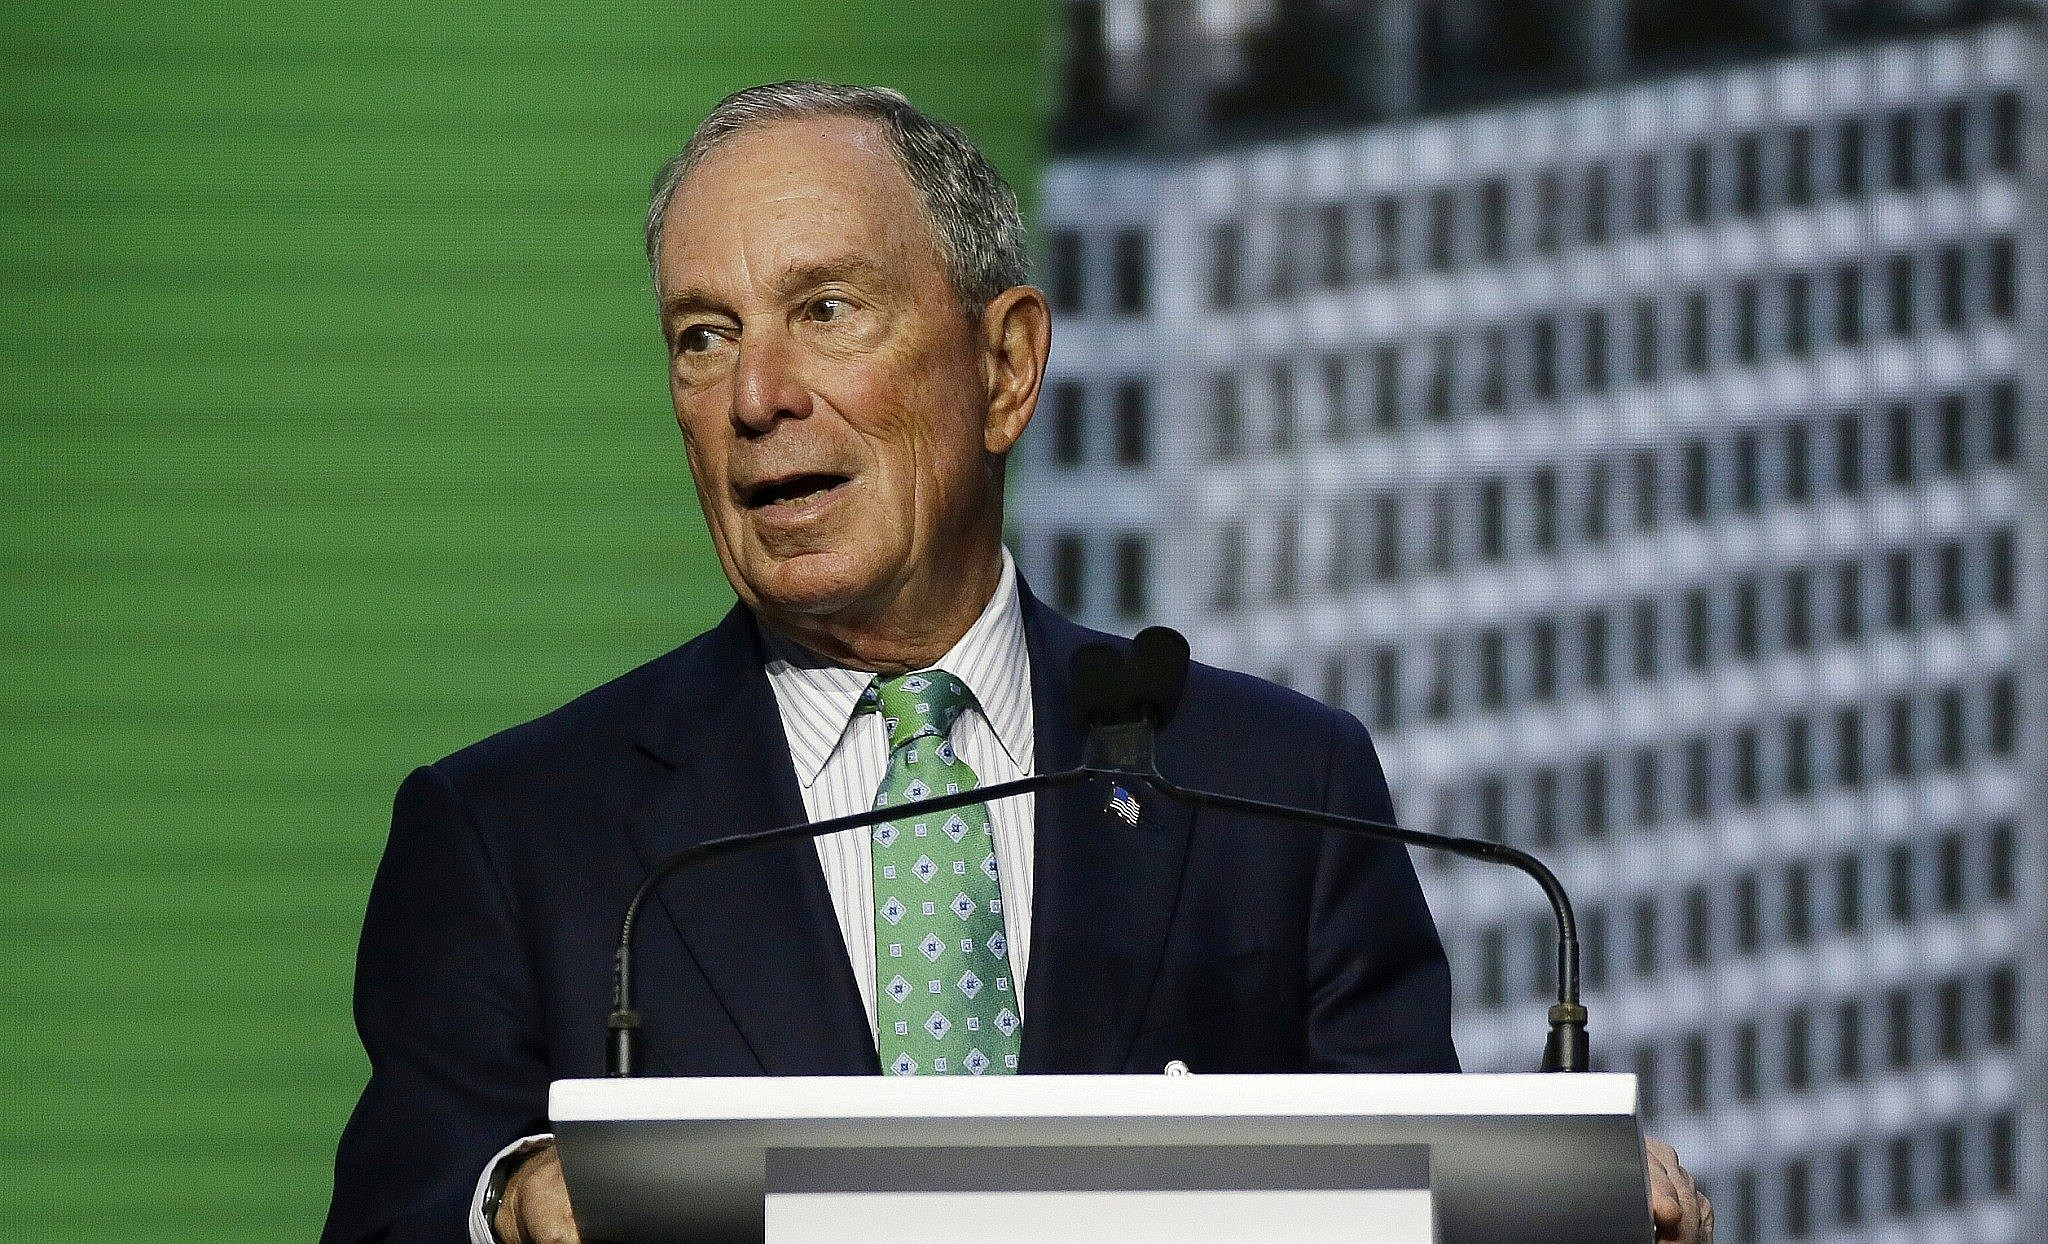 Former Mayor Bloomberg Rejoins Democratic Party As He Considers 2020 Run